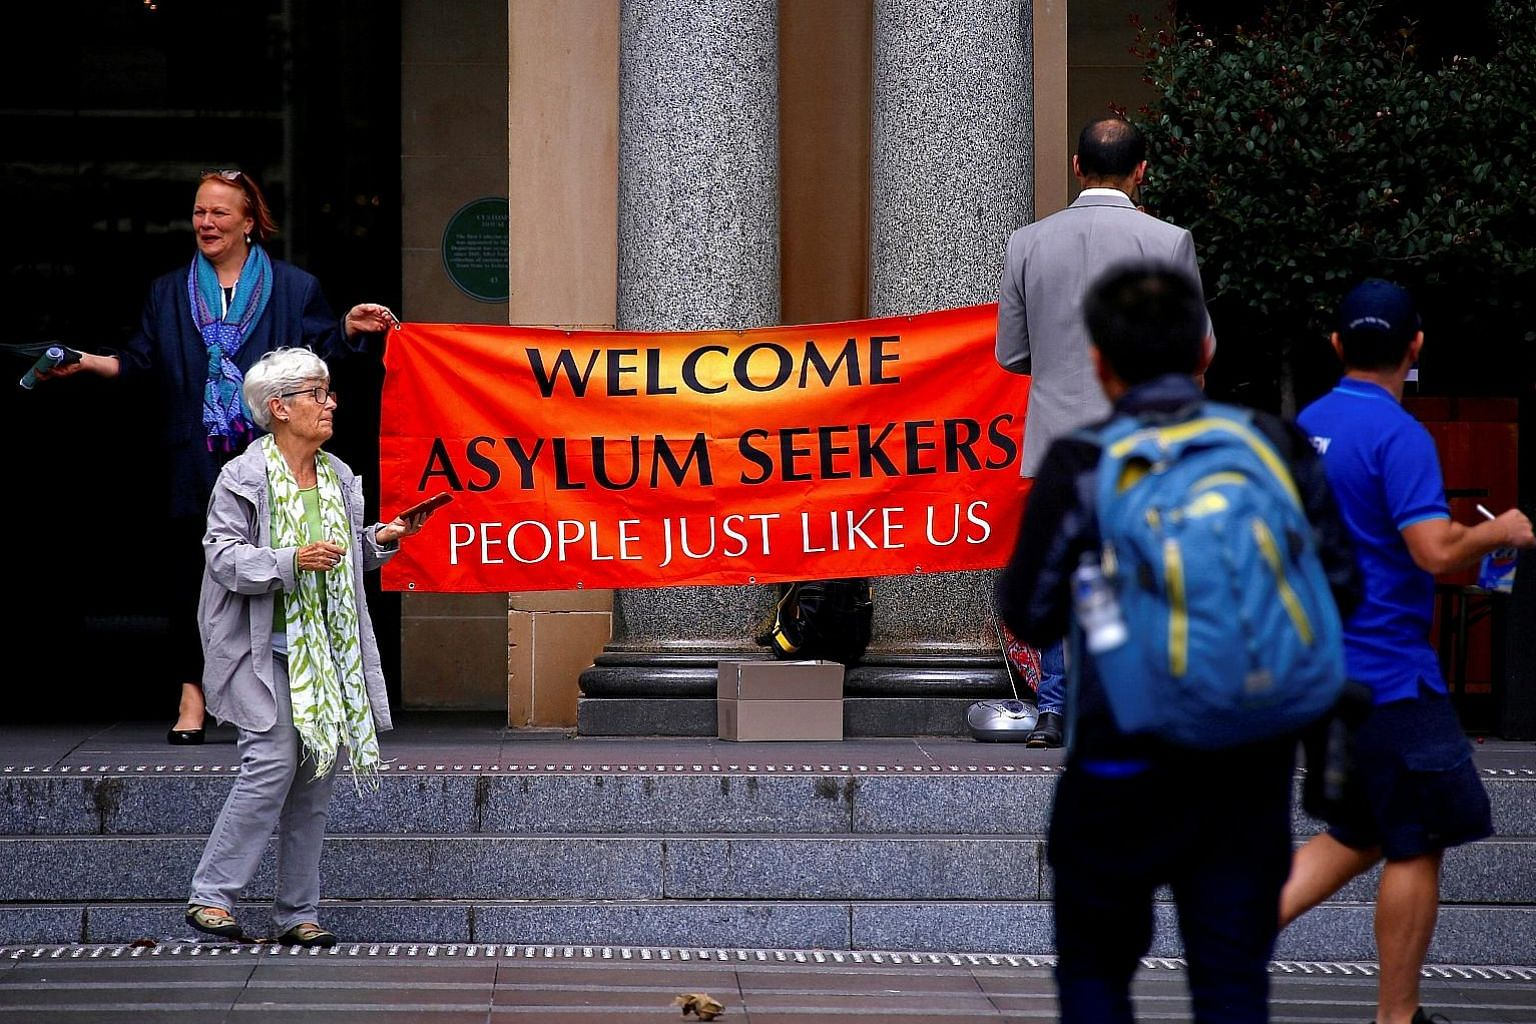 Refugee advocates displaying a banner on the steps of the Customs House building in Sydney on March 8. Some 50,000 people on 800 boats flooded into Australia seeking asylum before a clampdown in 2013. Of those, 7,500 have yet to present their cases f